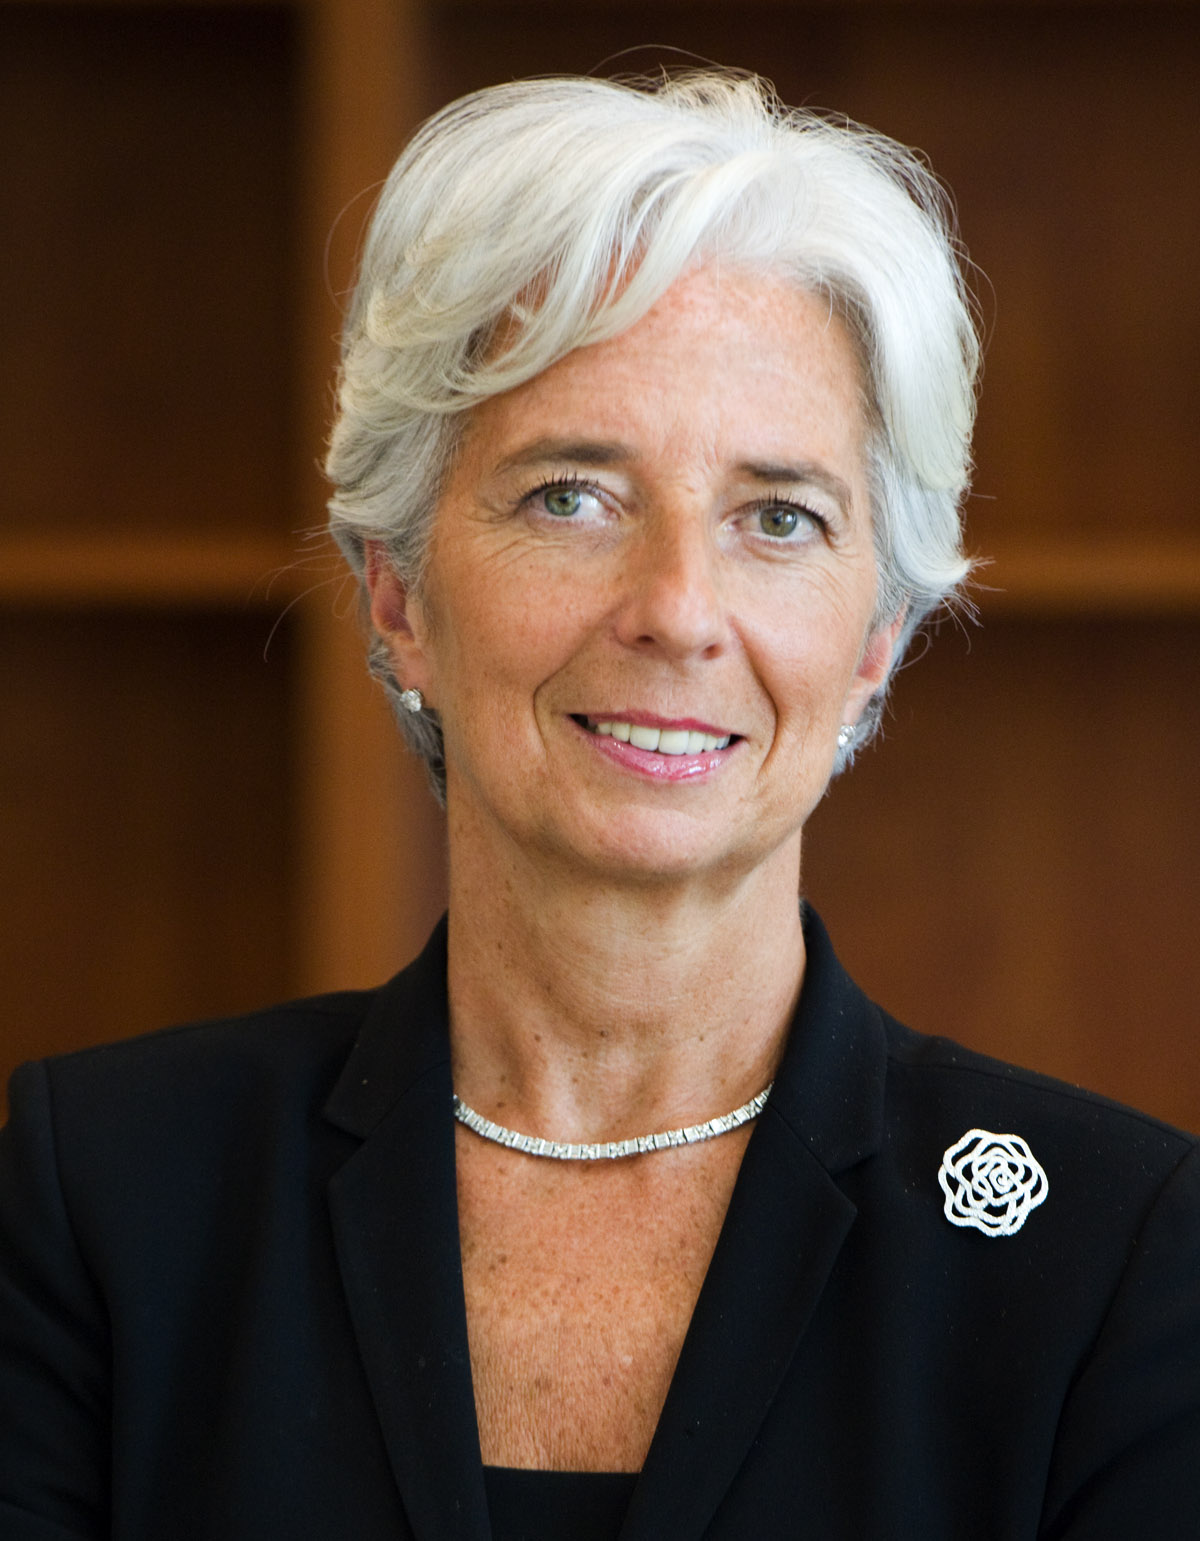 Christine Lagrade - Christine Lagarde is currently serving her second term as managing director of the International Monetary Fund (IMF). She is the first woman to ever hold that position. In 2017, Forbes Magazine ranked her number 8 on the World's Most Powerful Women list. Prior to that she was the first woman to become a finance minister for a G-8 economy and the first woman to chair the law firm Baker & McKenzie. In 2009, the Financial Times chose her as the best finance minister in Europe.Ms. Lagarde was raised in comfort and relative privilege. However, as she assumed the position as head of the IMF, the European economies were suffering through a debt crisis of their own making. Nonetheless, the IMF stepped in and put real money on the table to back stop various governments and economies. This was a bold move that expanded the mission of the IMF beyond its original mandate. At the same time, Ms. Lagarde was like a disciplined parent, clearly articulating that government reform was necessary in order to secure continuing IMF support. She later broke with the European establishment with her calls for debt relief for Greece.In short, Ms. Lagarde has made hard choices regarding when and how to expand the IMF mandate, and when and how to back away from collective participation. She has forcefully and clearly articulated the expectations of the IMF in a time of crisis. She has been a model of steady female leadership, and has done it with style. She has unapologetically been both firm and flexible with expect to the responsibilities of the basket she carries.